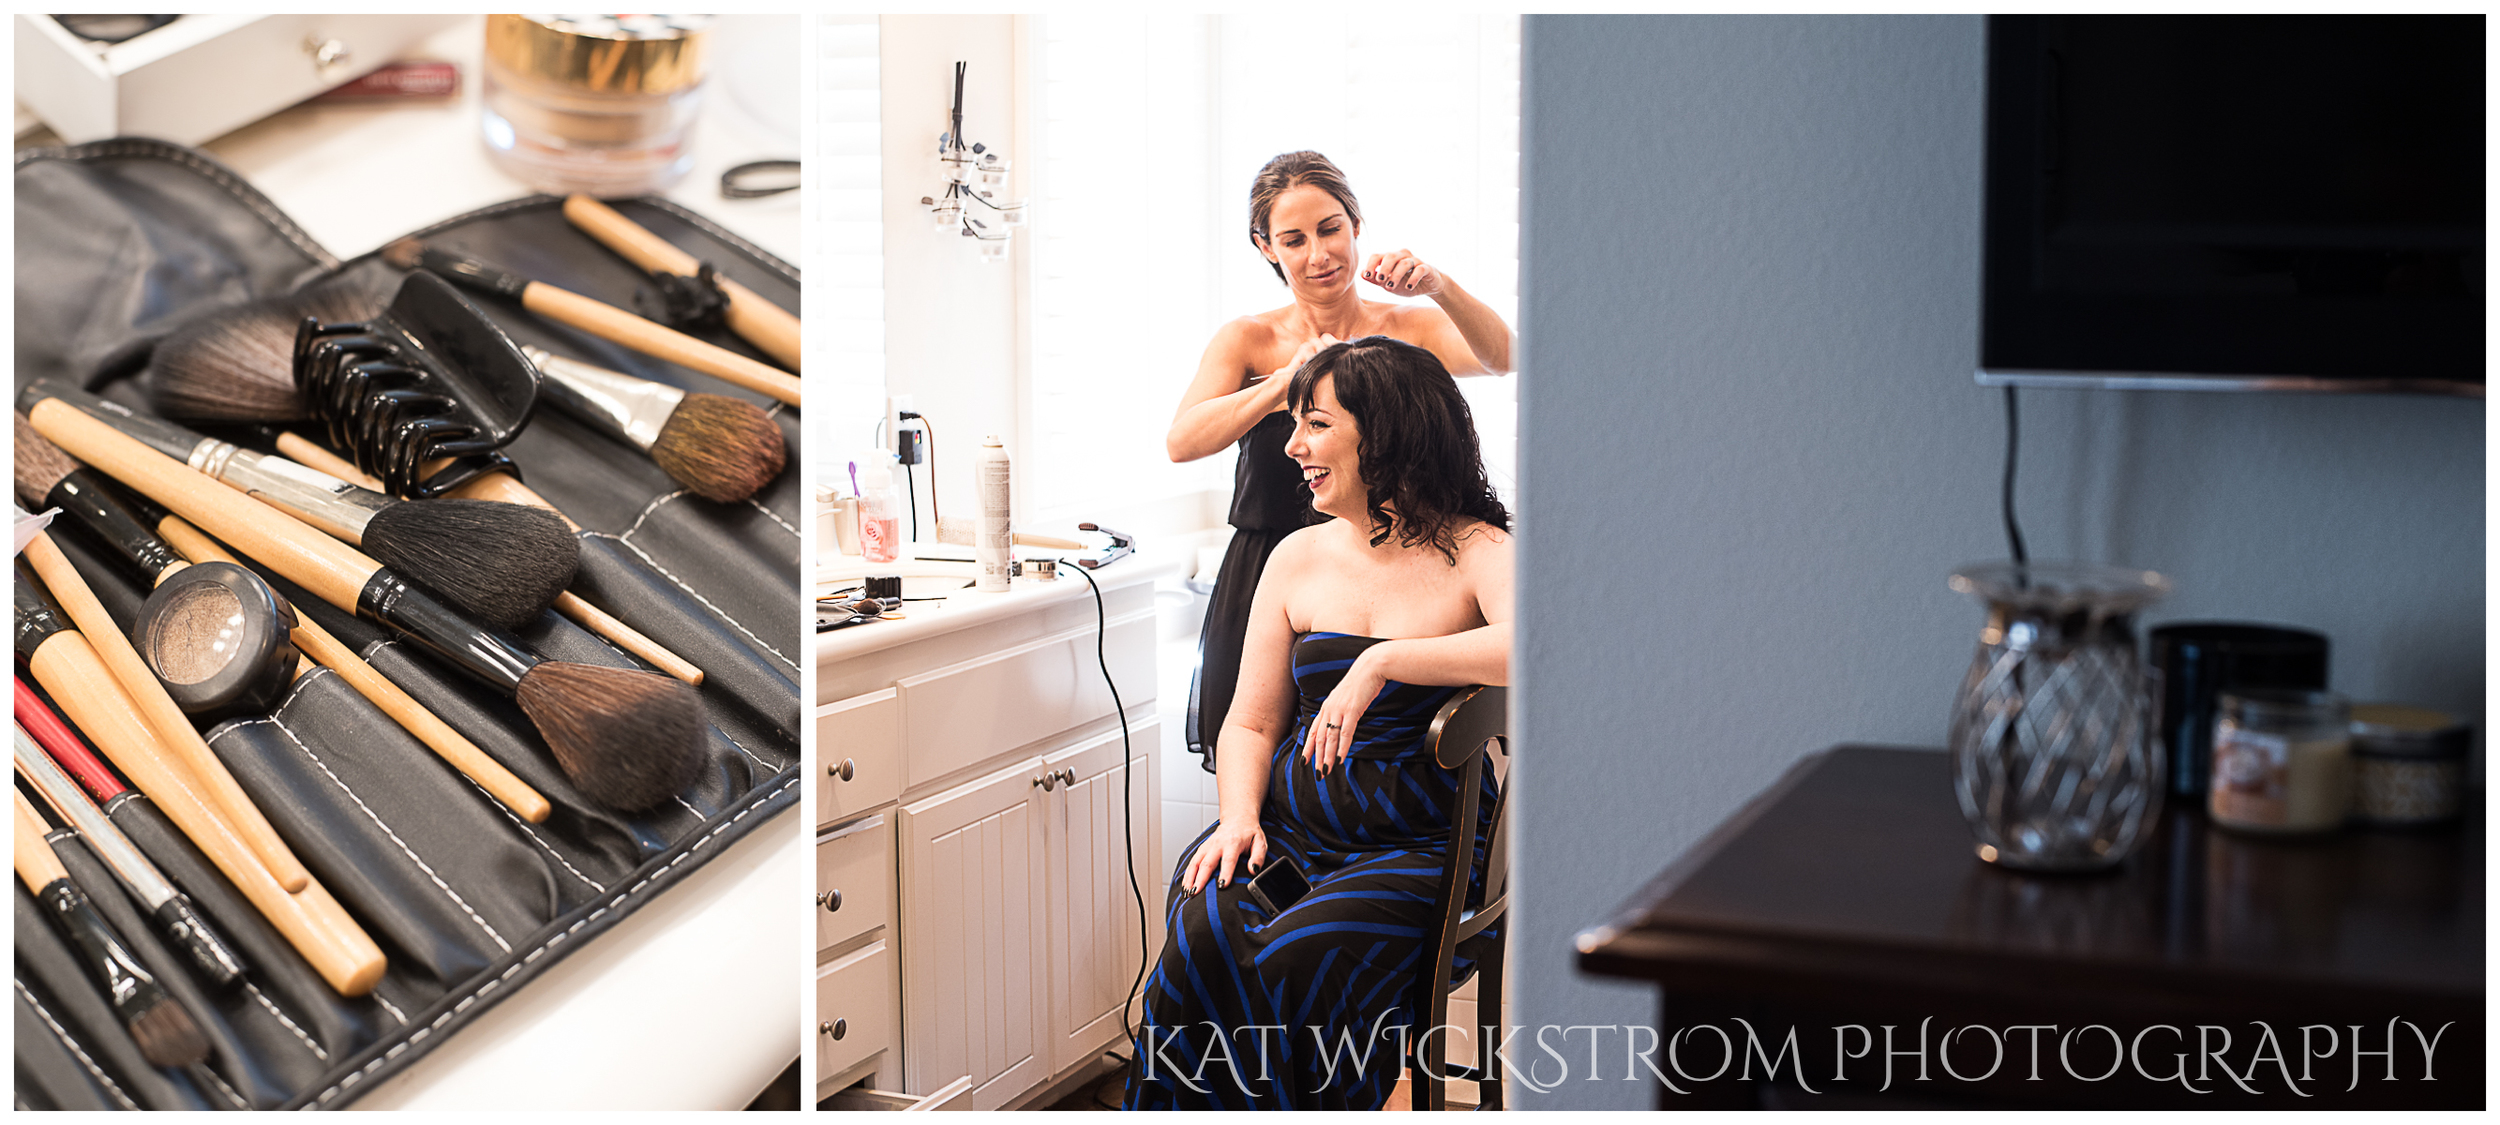 The bride got ready at her sister's home, where her sister could pamper her with all the makeup.